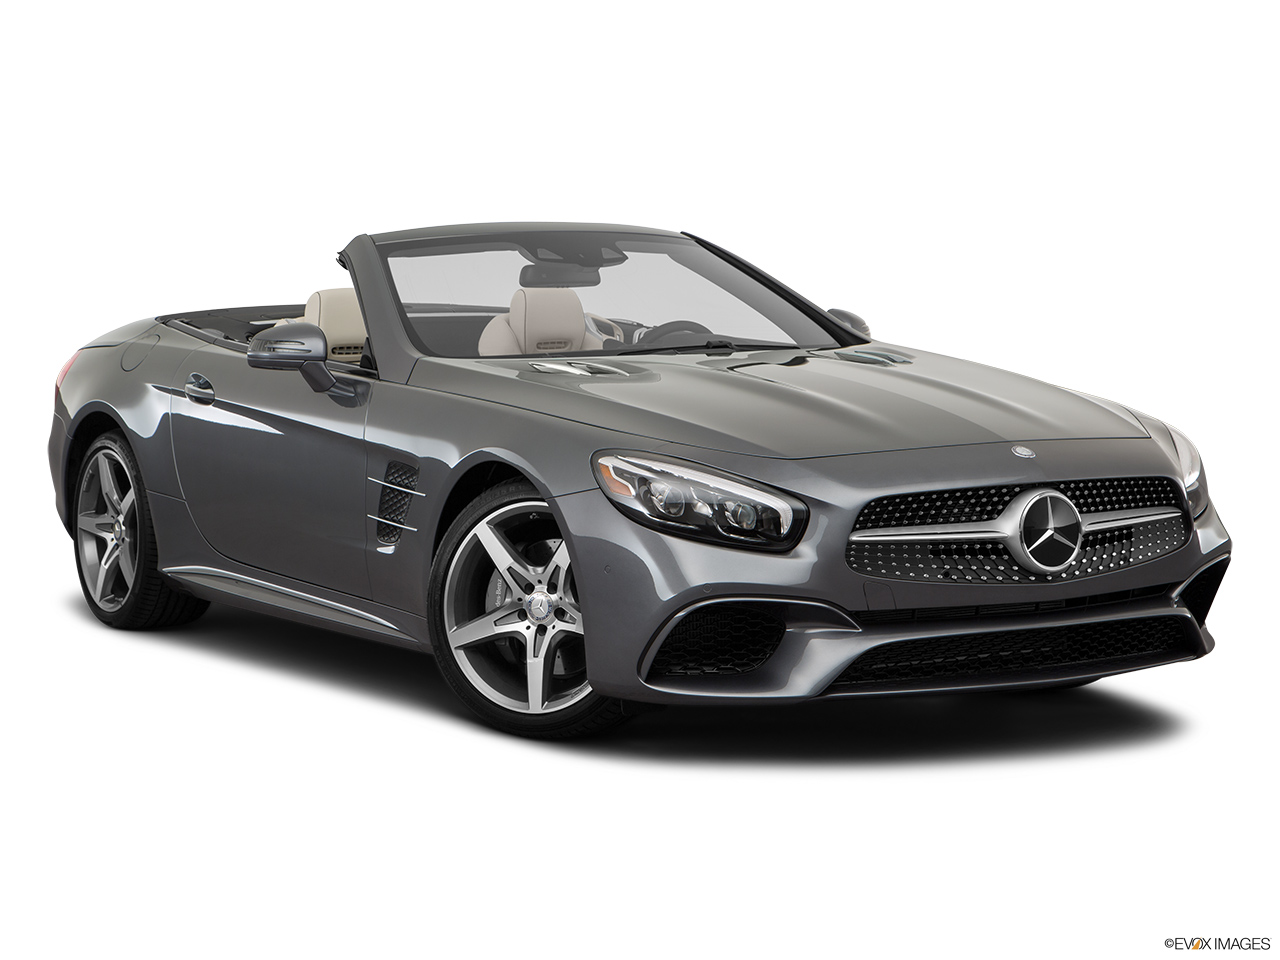 Car pictures list for mercedes benz sl class 2018 sl 400 for Mercedes benz sls class